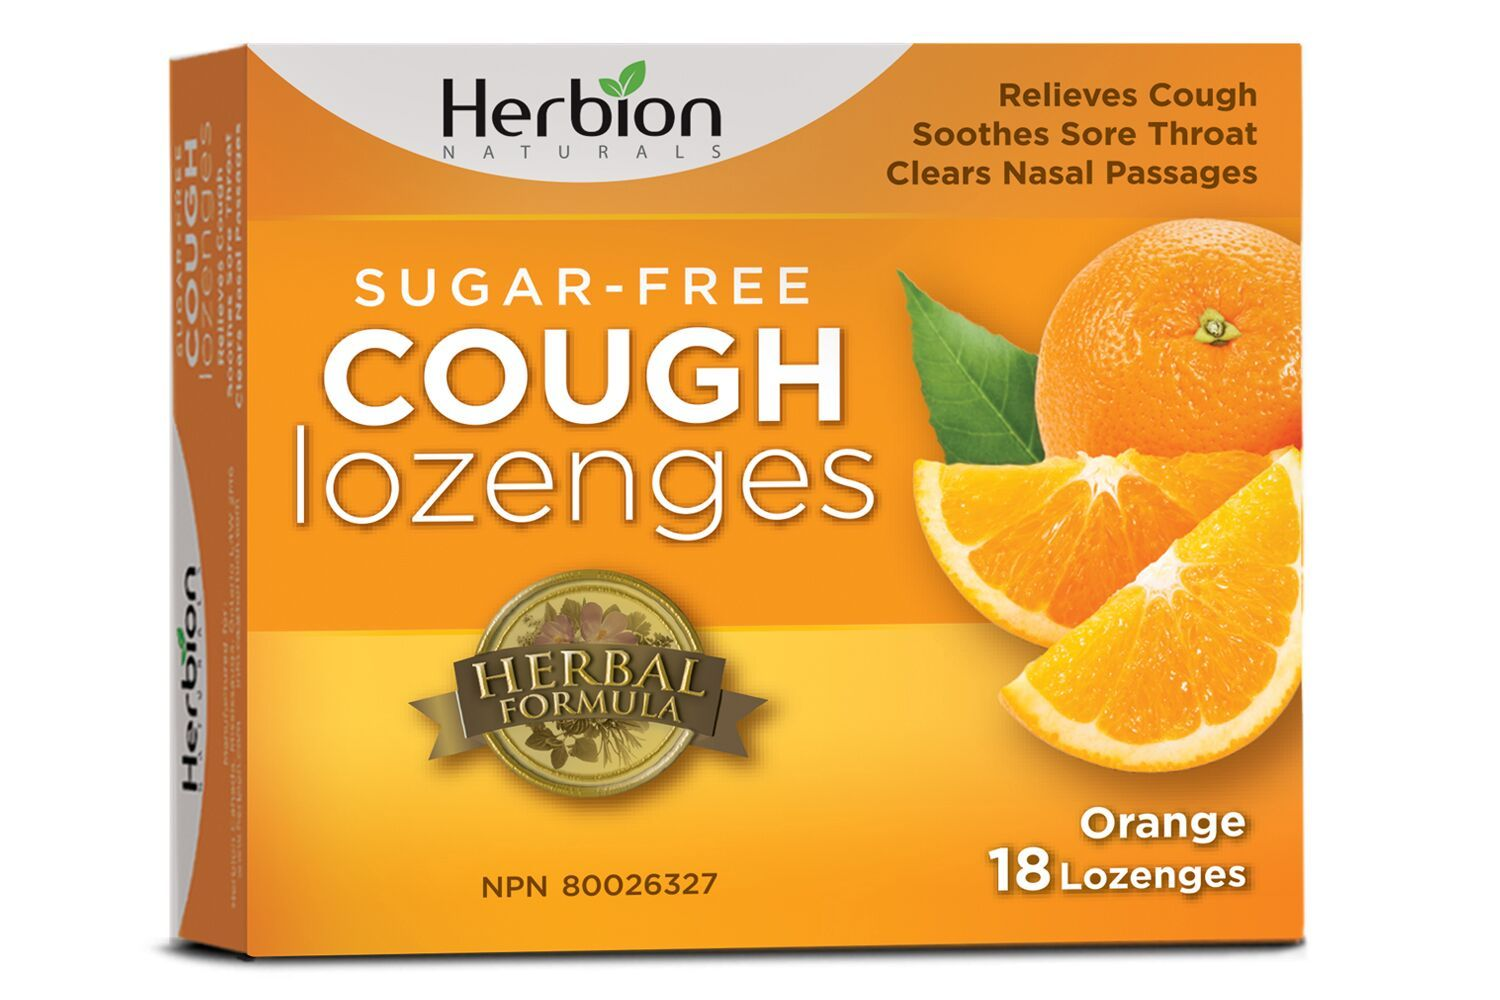 Supplements & Vitamins - Herbion - Sugar Free Orange Cough Lozenges, 18 Lozenges